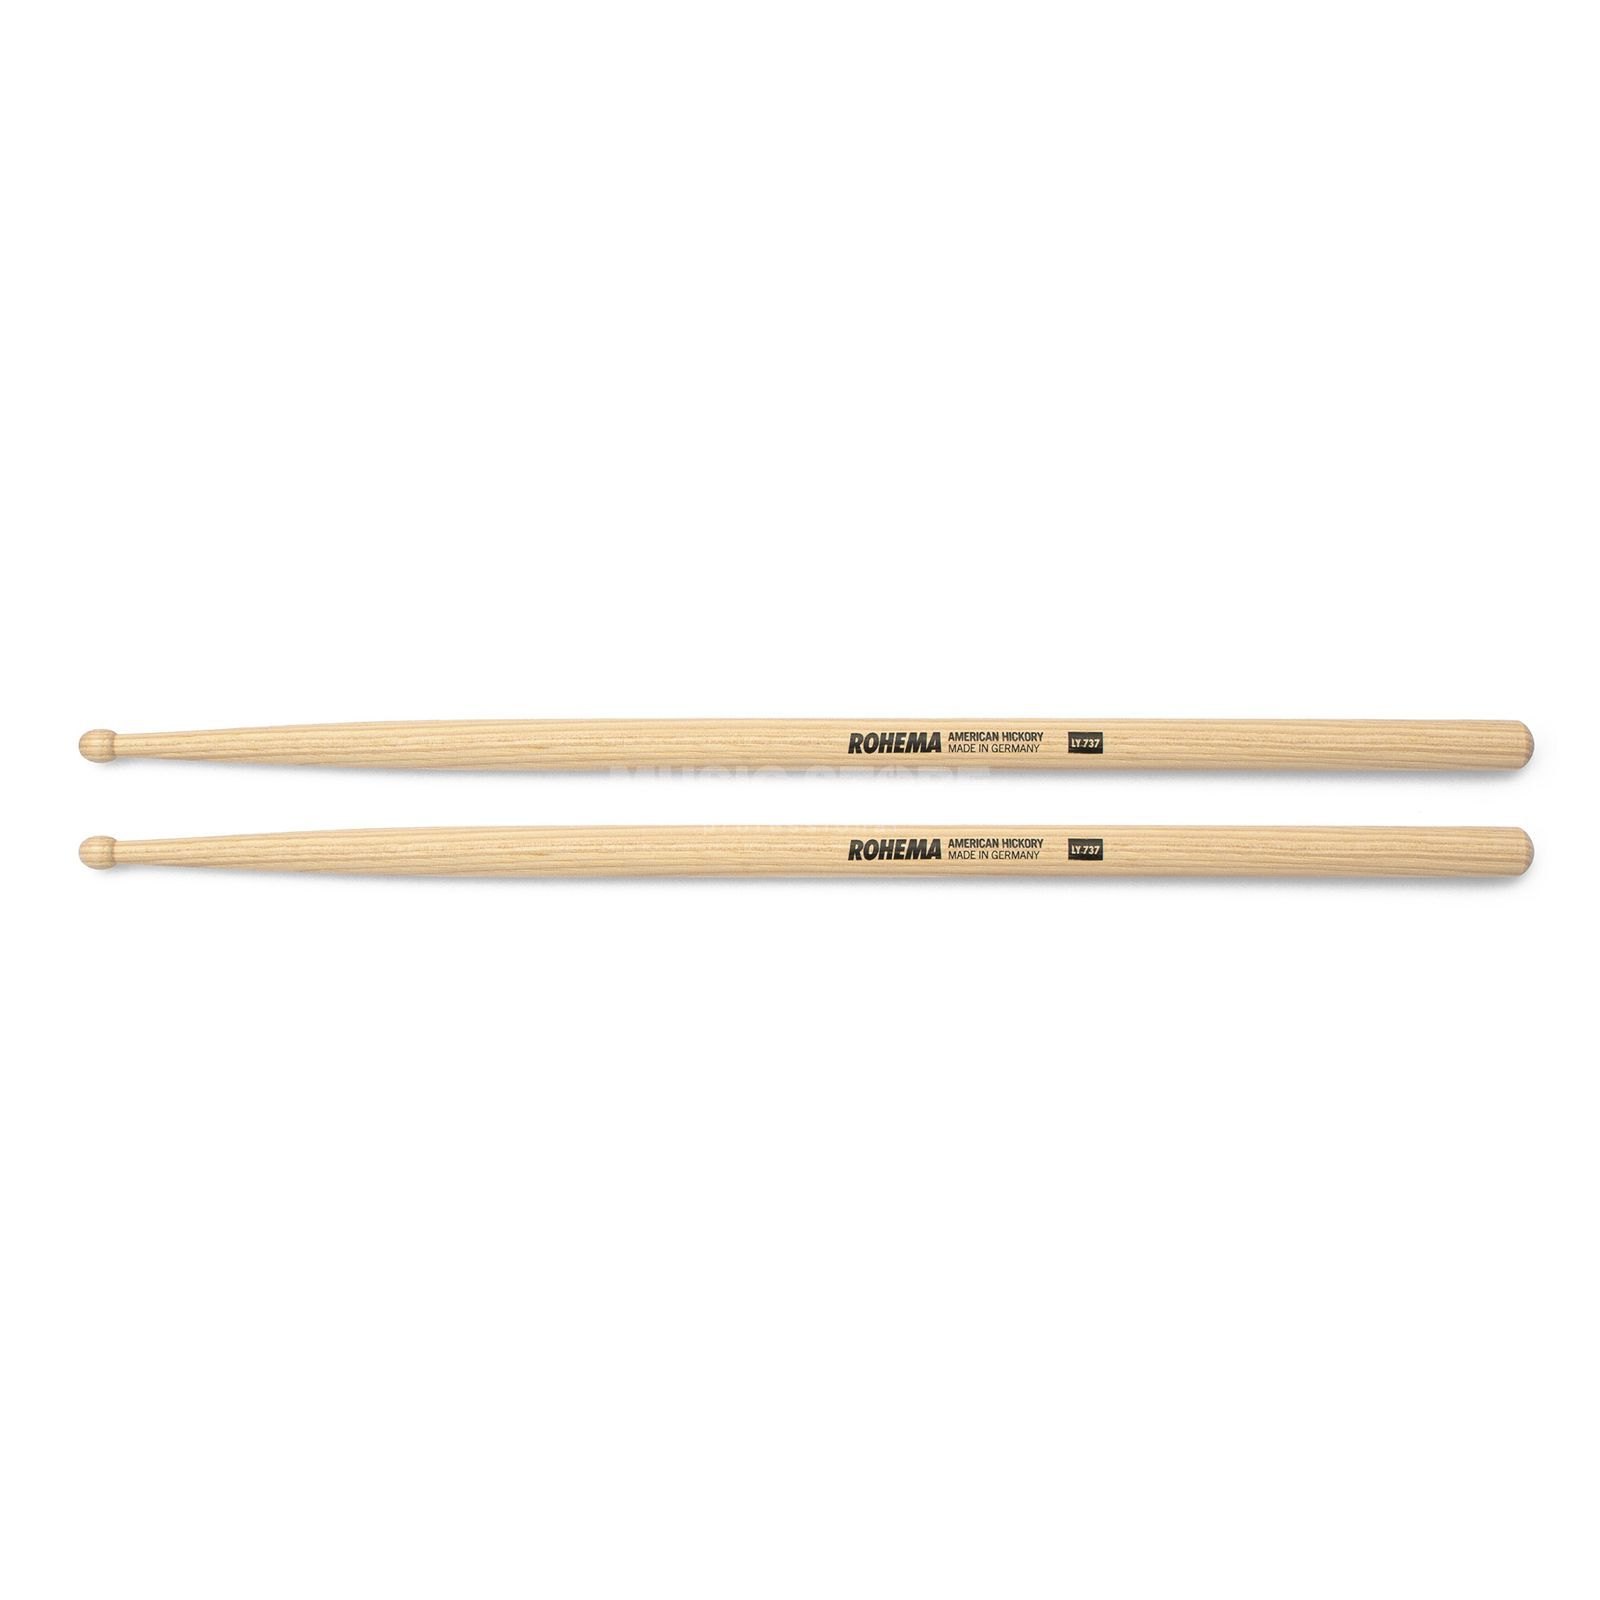 "Rohema Round Tip Sticks ""Lytton"", Wood Tip Produktbild"